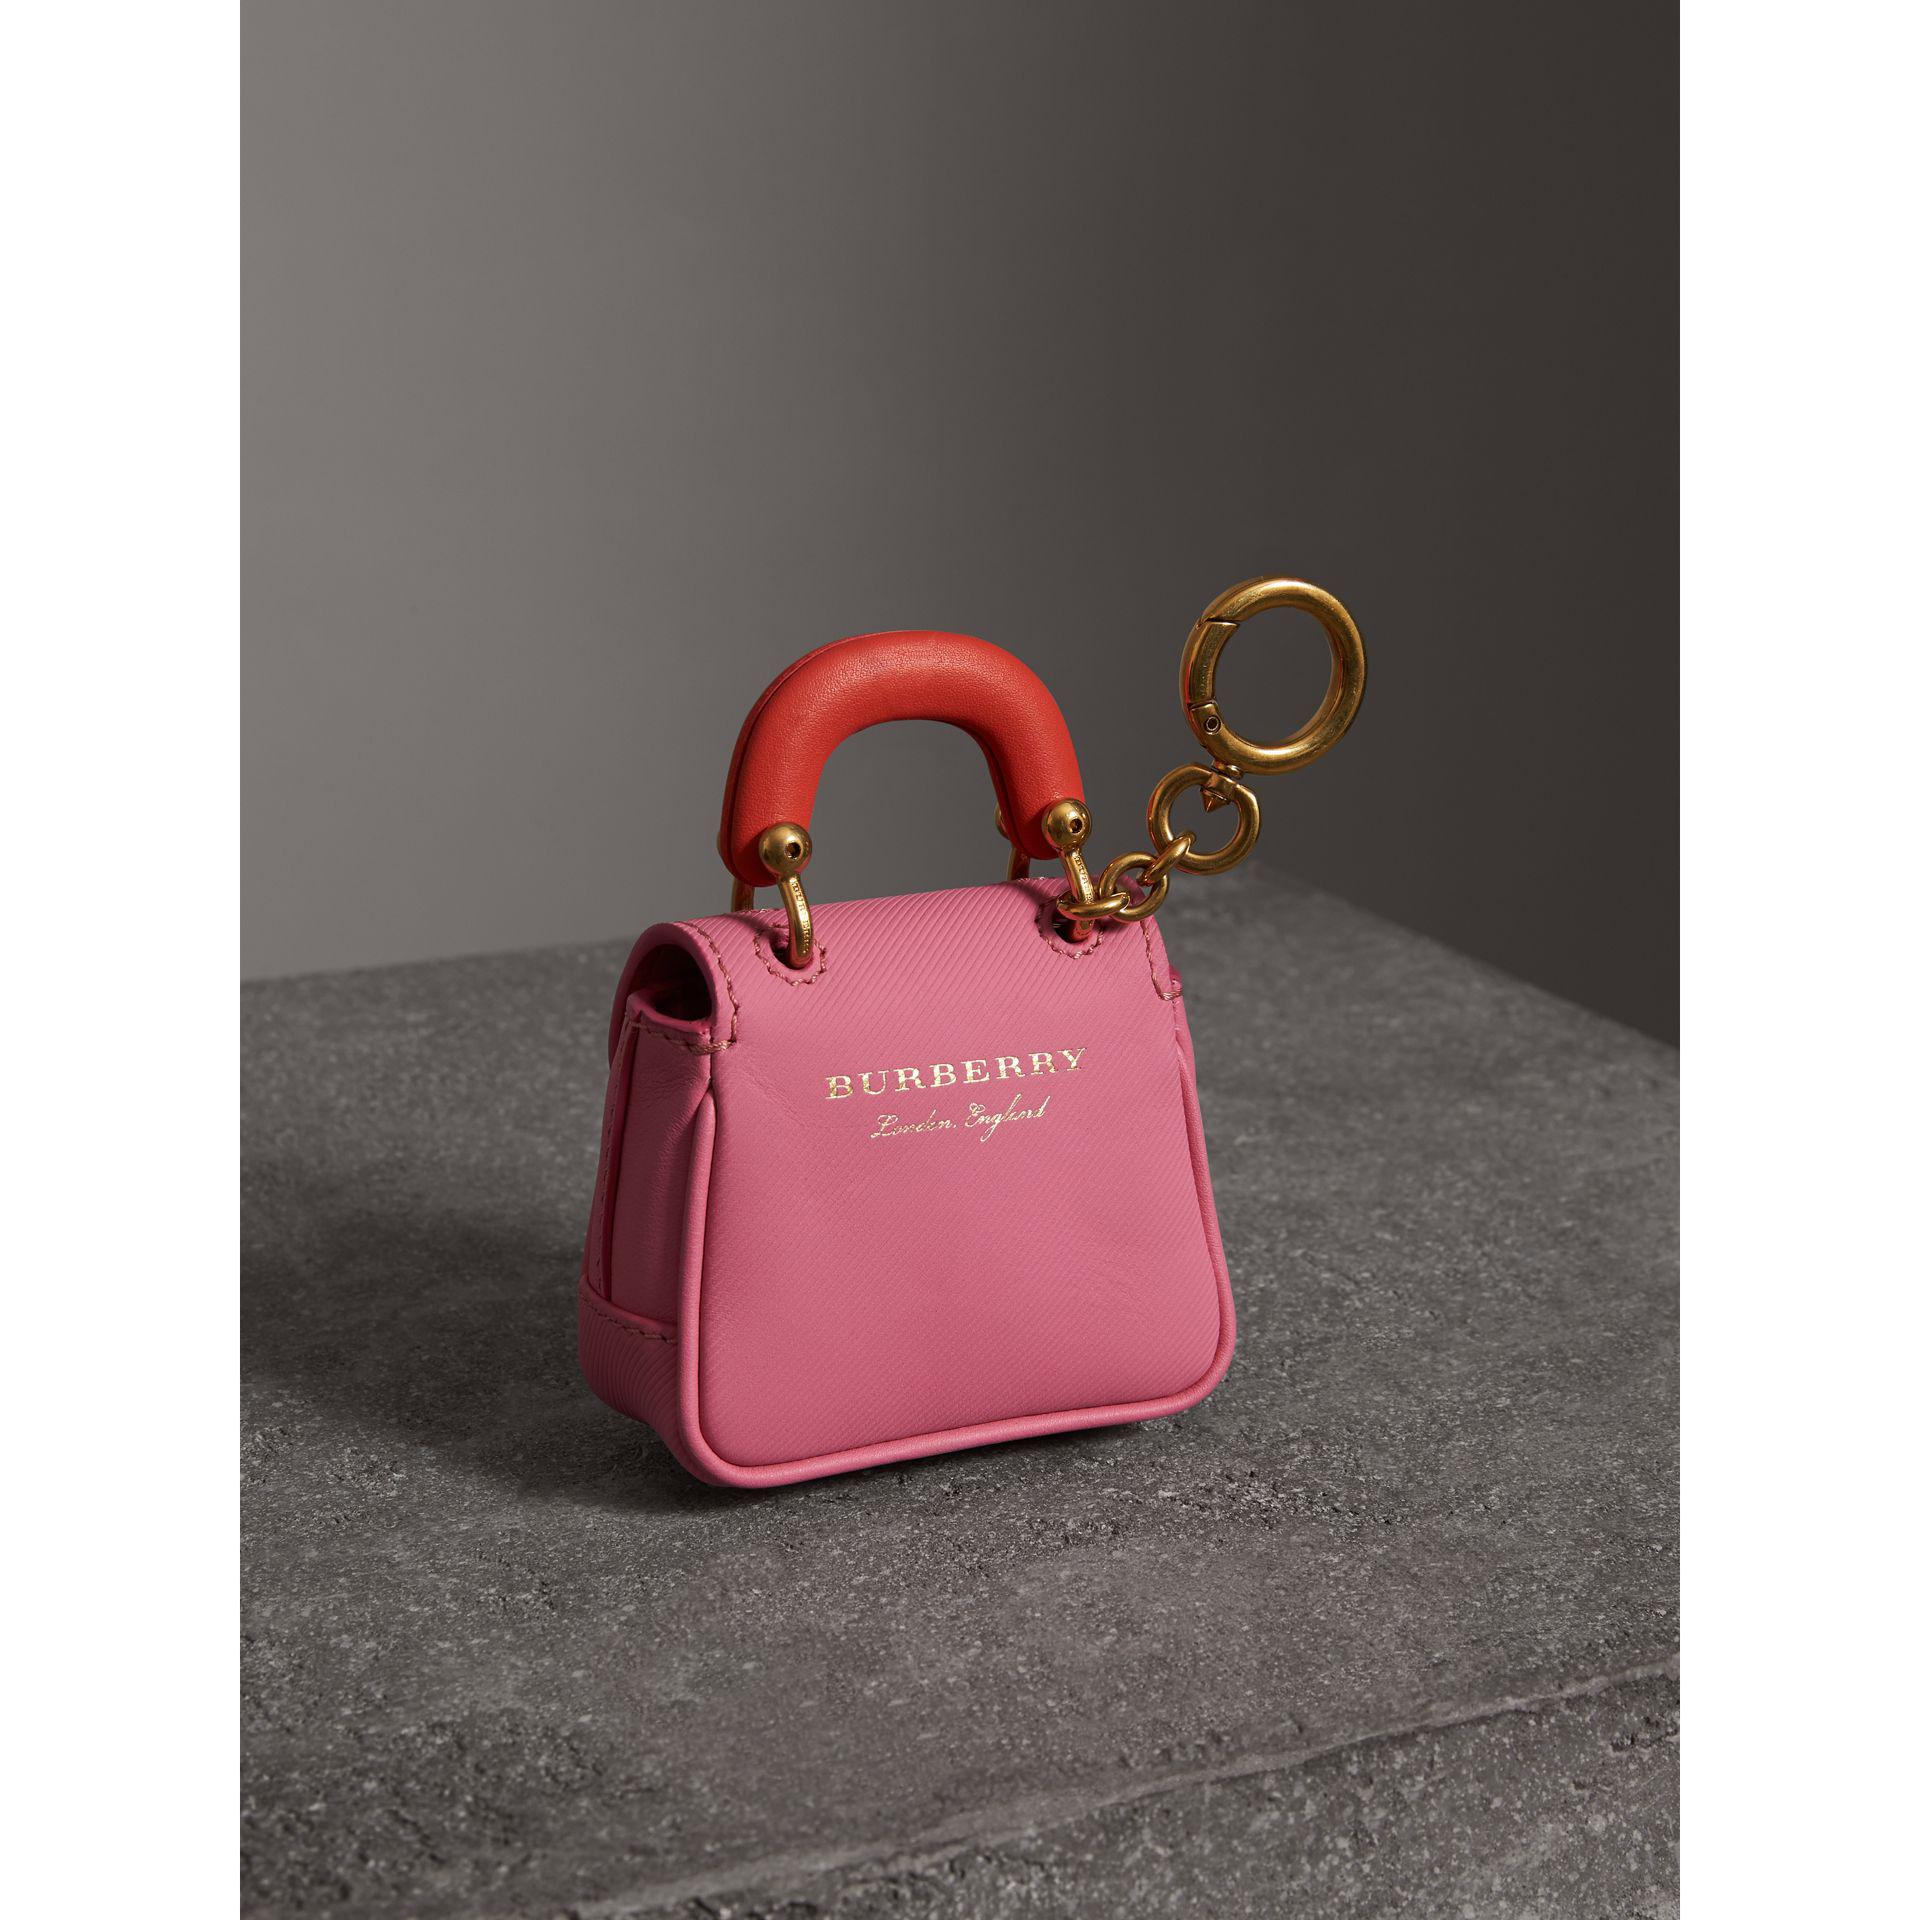 c77d5dfcec2b Lyst - Burberry The Dk88 Charm in Pink